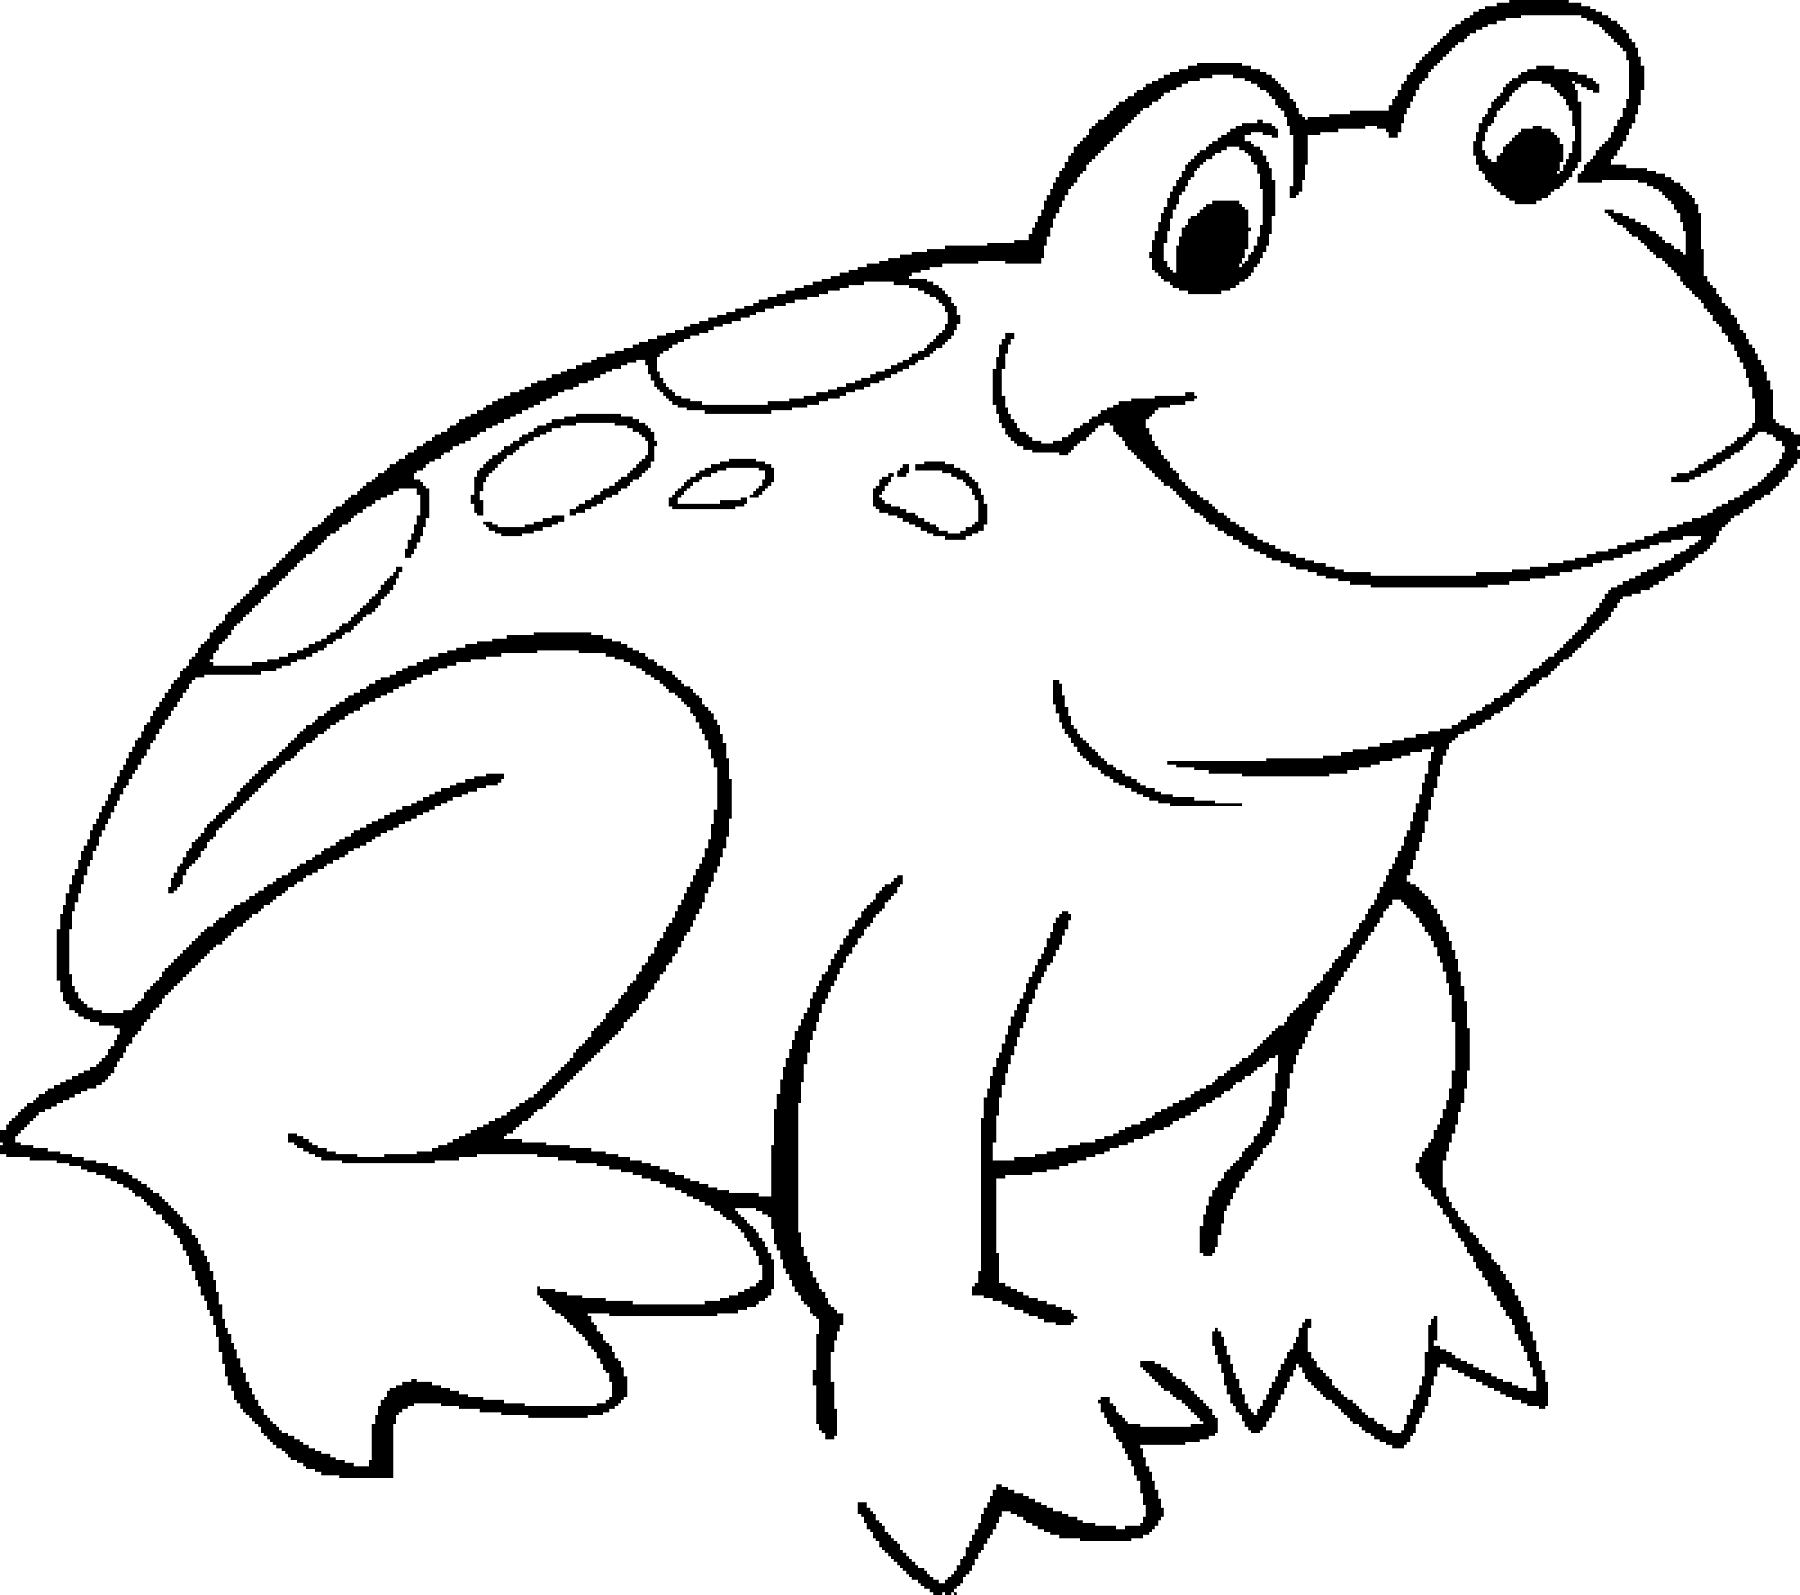 Frog and rose clipart black and white png free download Poison Dart Frog Drawing | Free download best Poison Dart Frog ... png free download